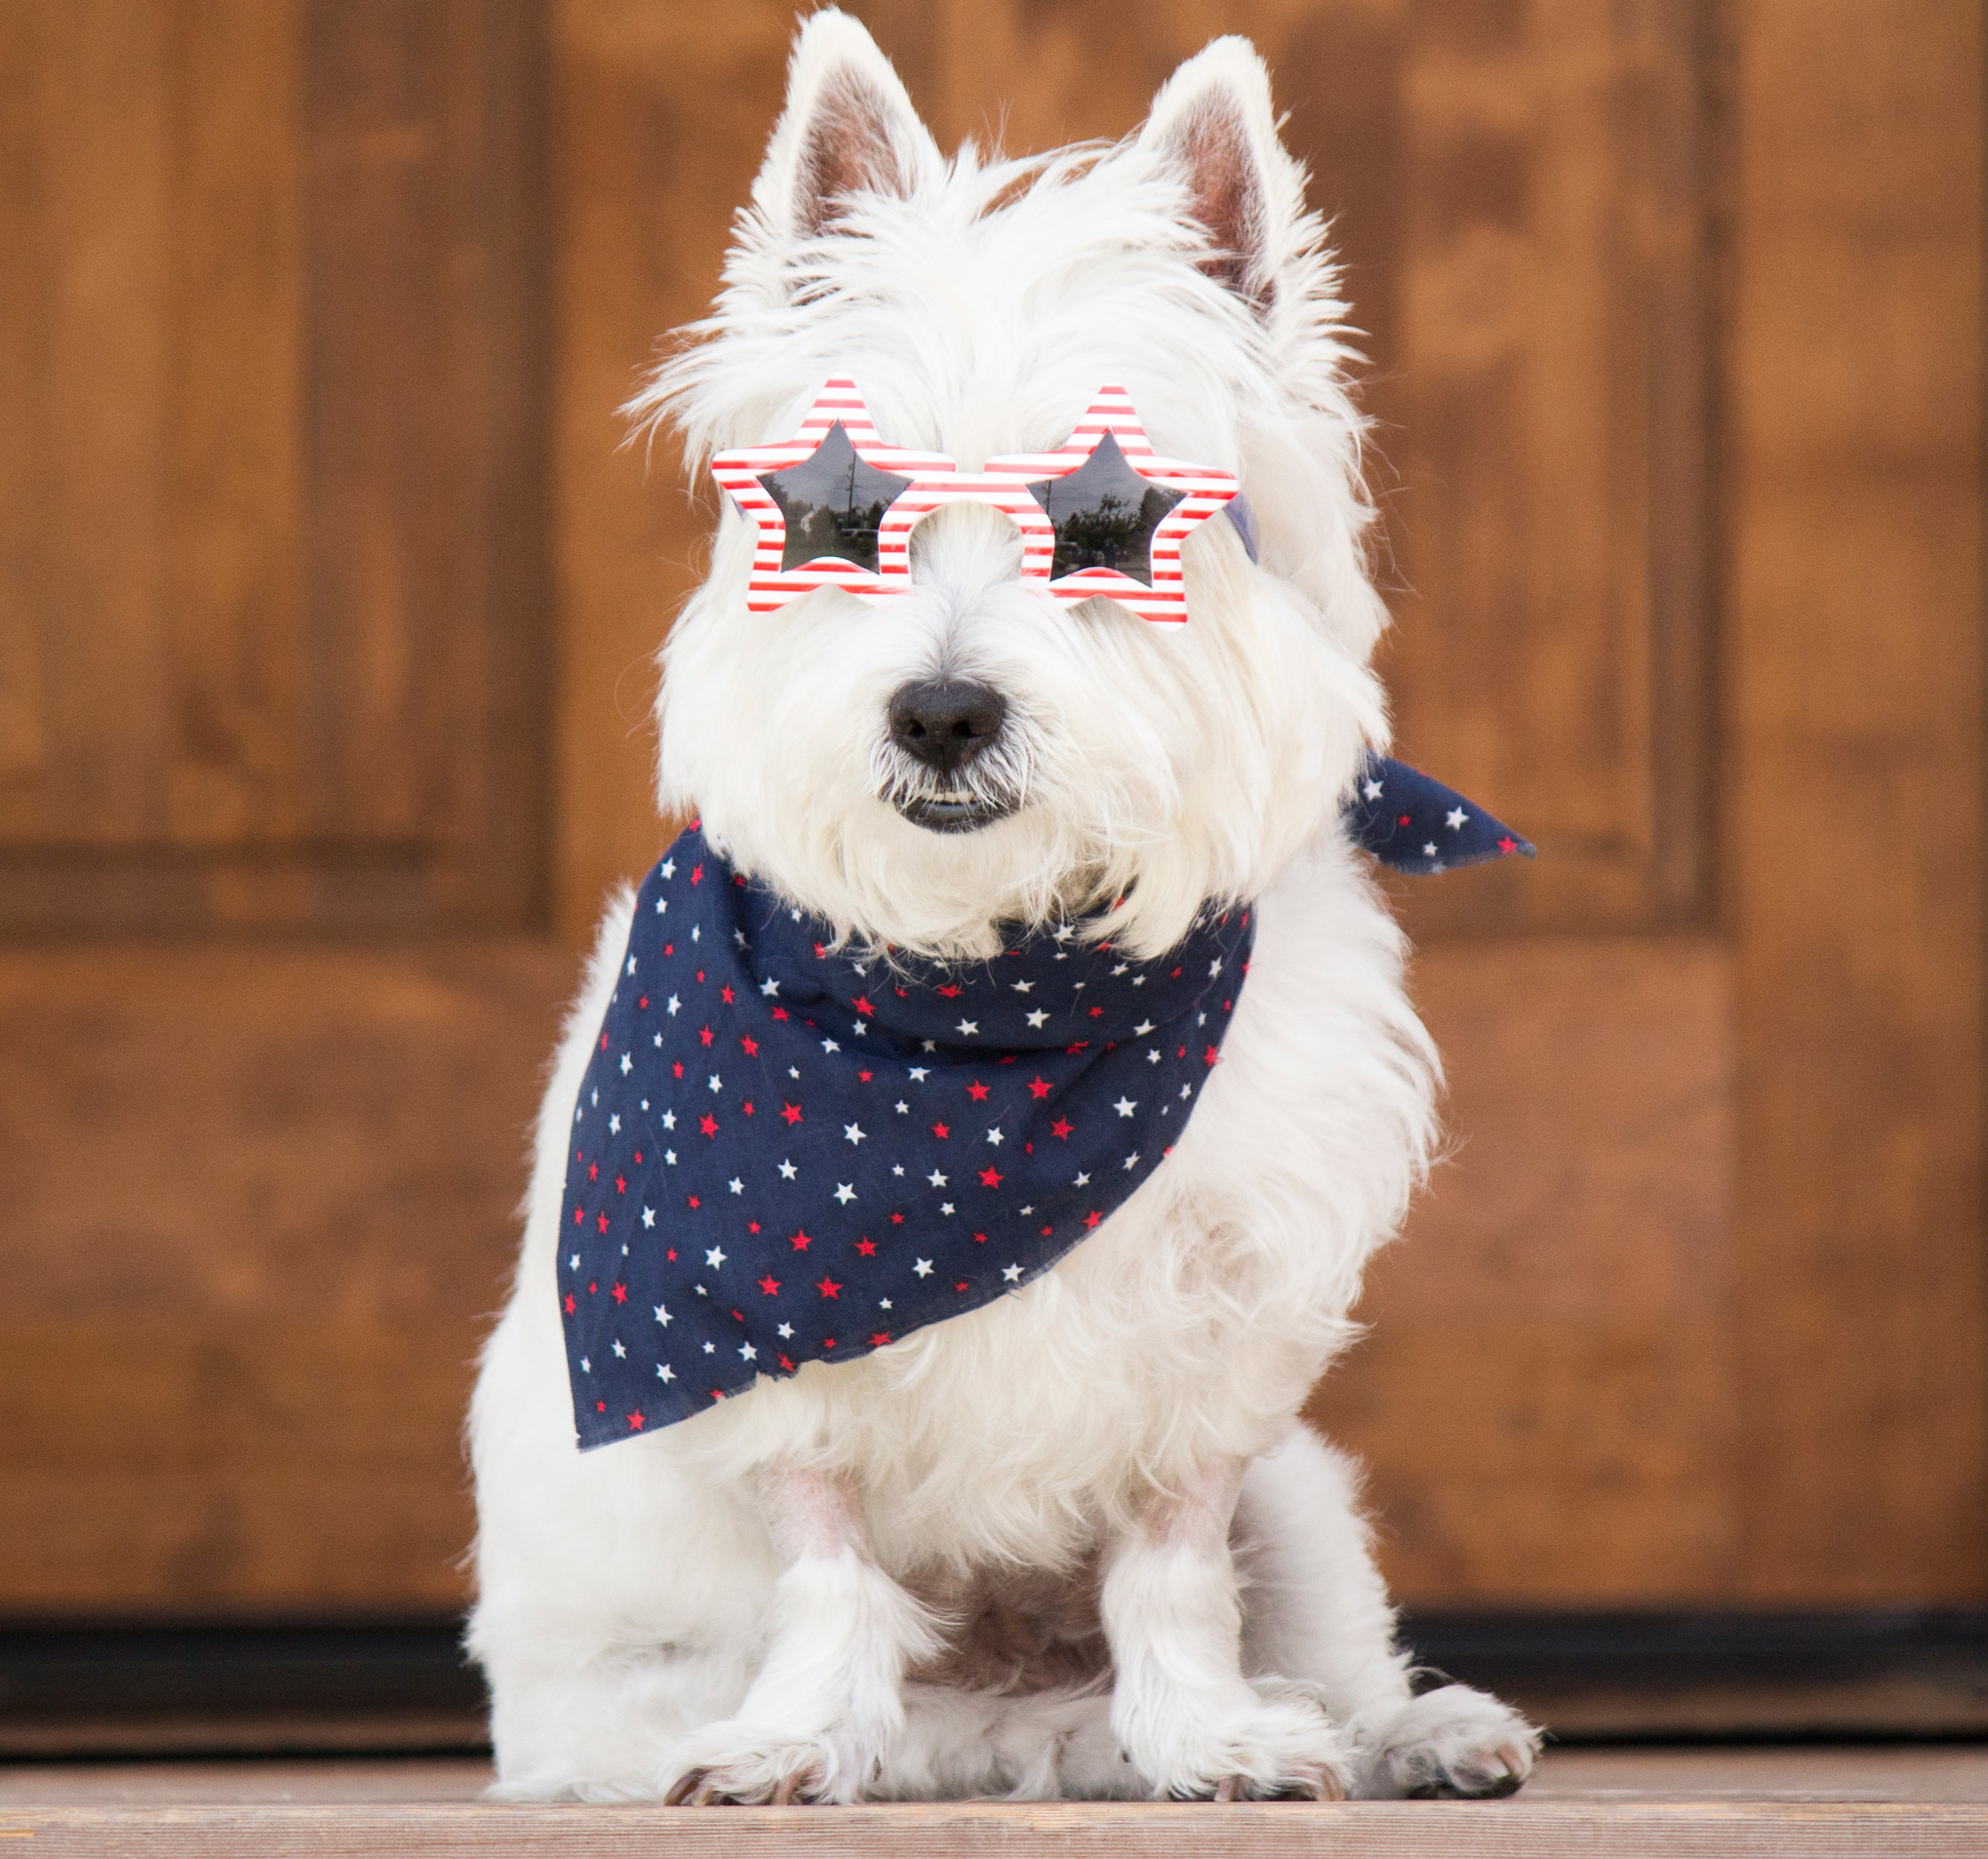 Dog training tips: Get your dog used to fireworks by playing them audio recordings of fireworks before the 4th.